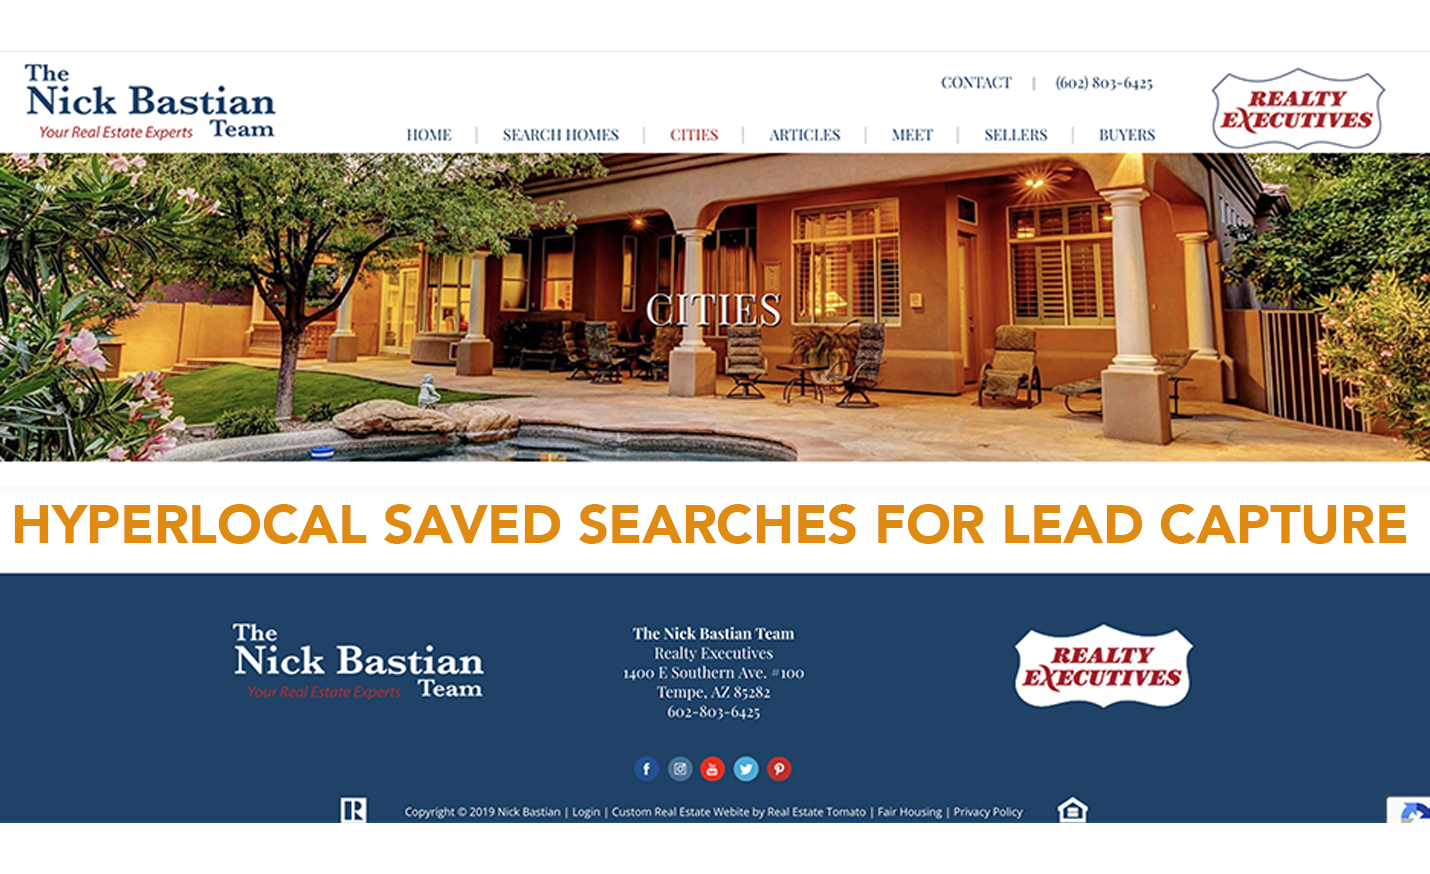 hyperlocal saved searches for lead capture with realtors and brokers